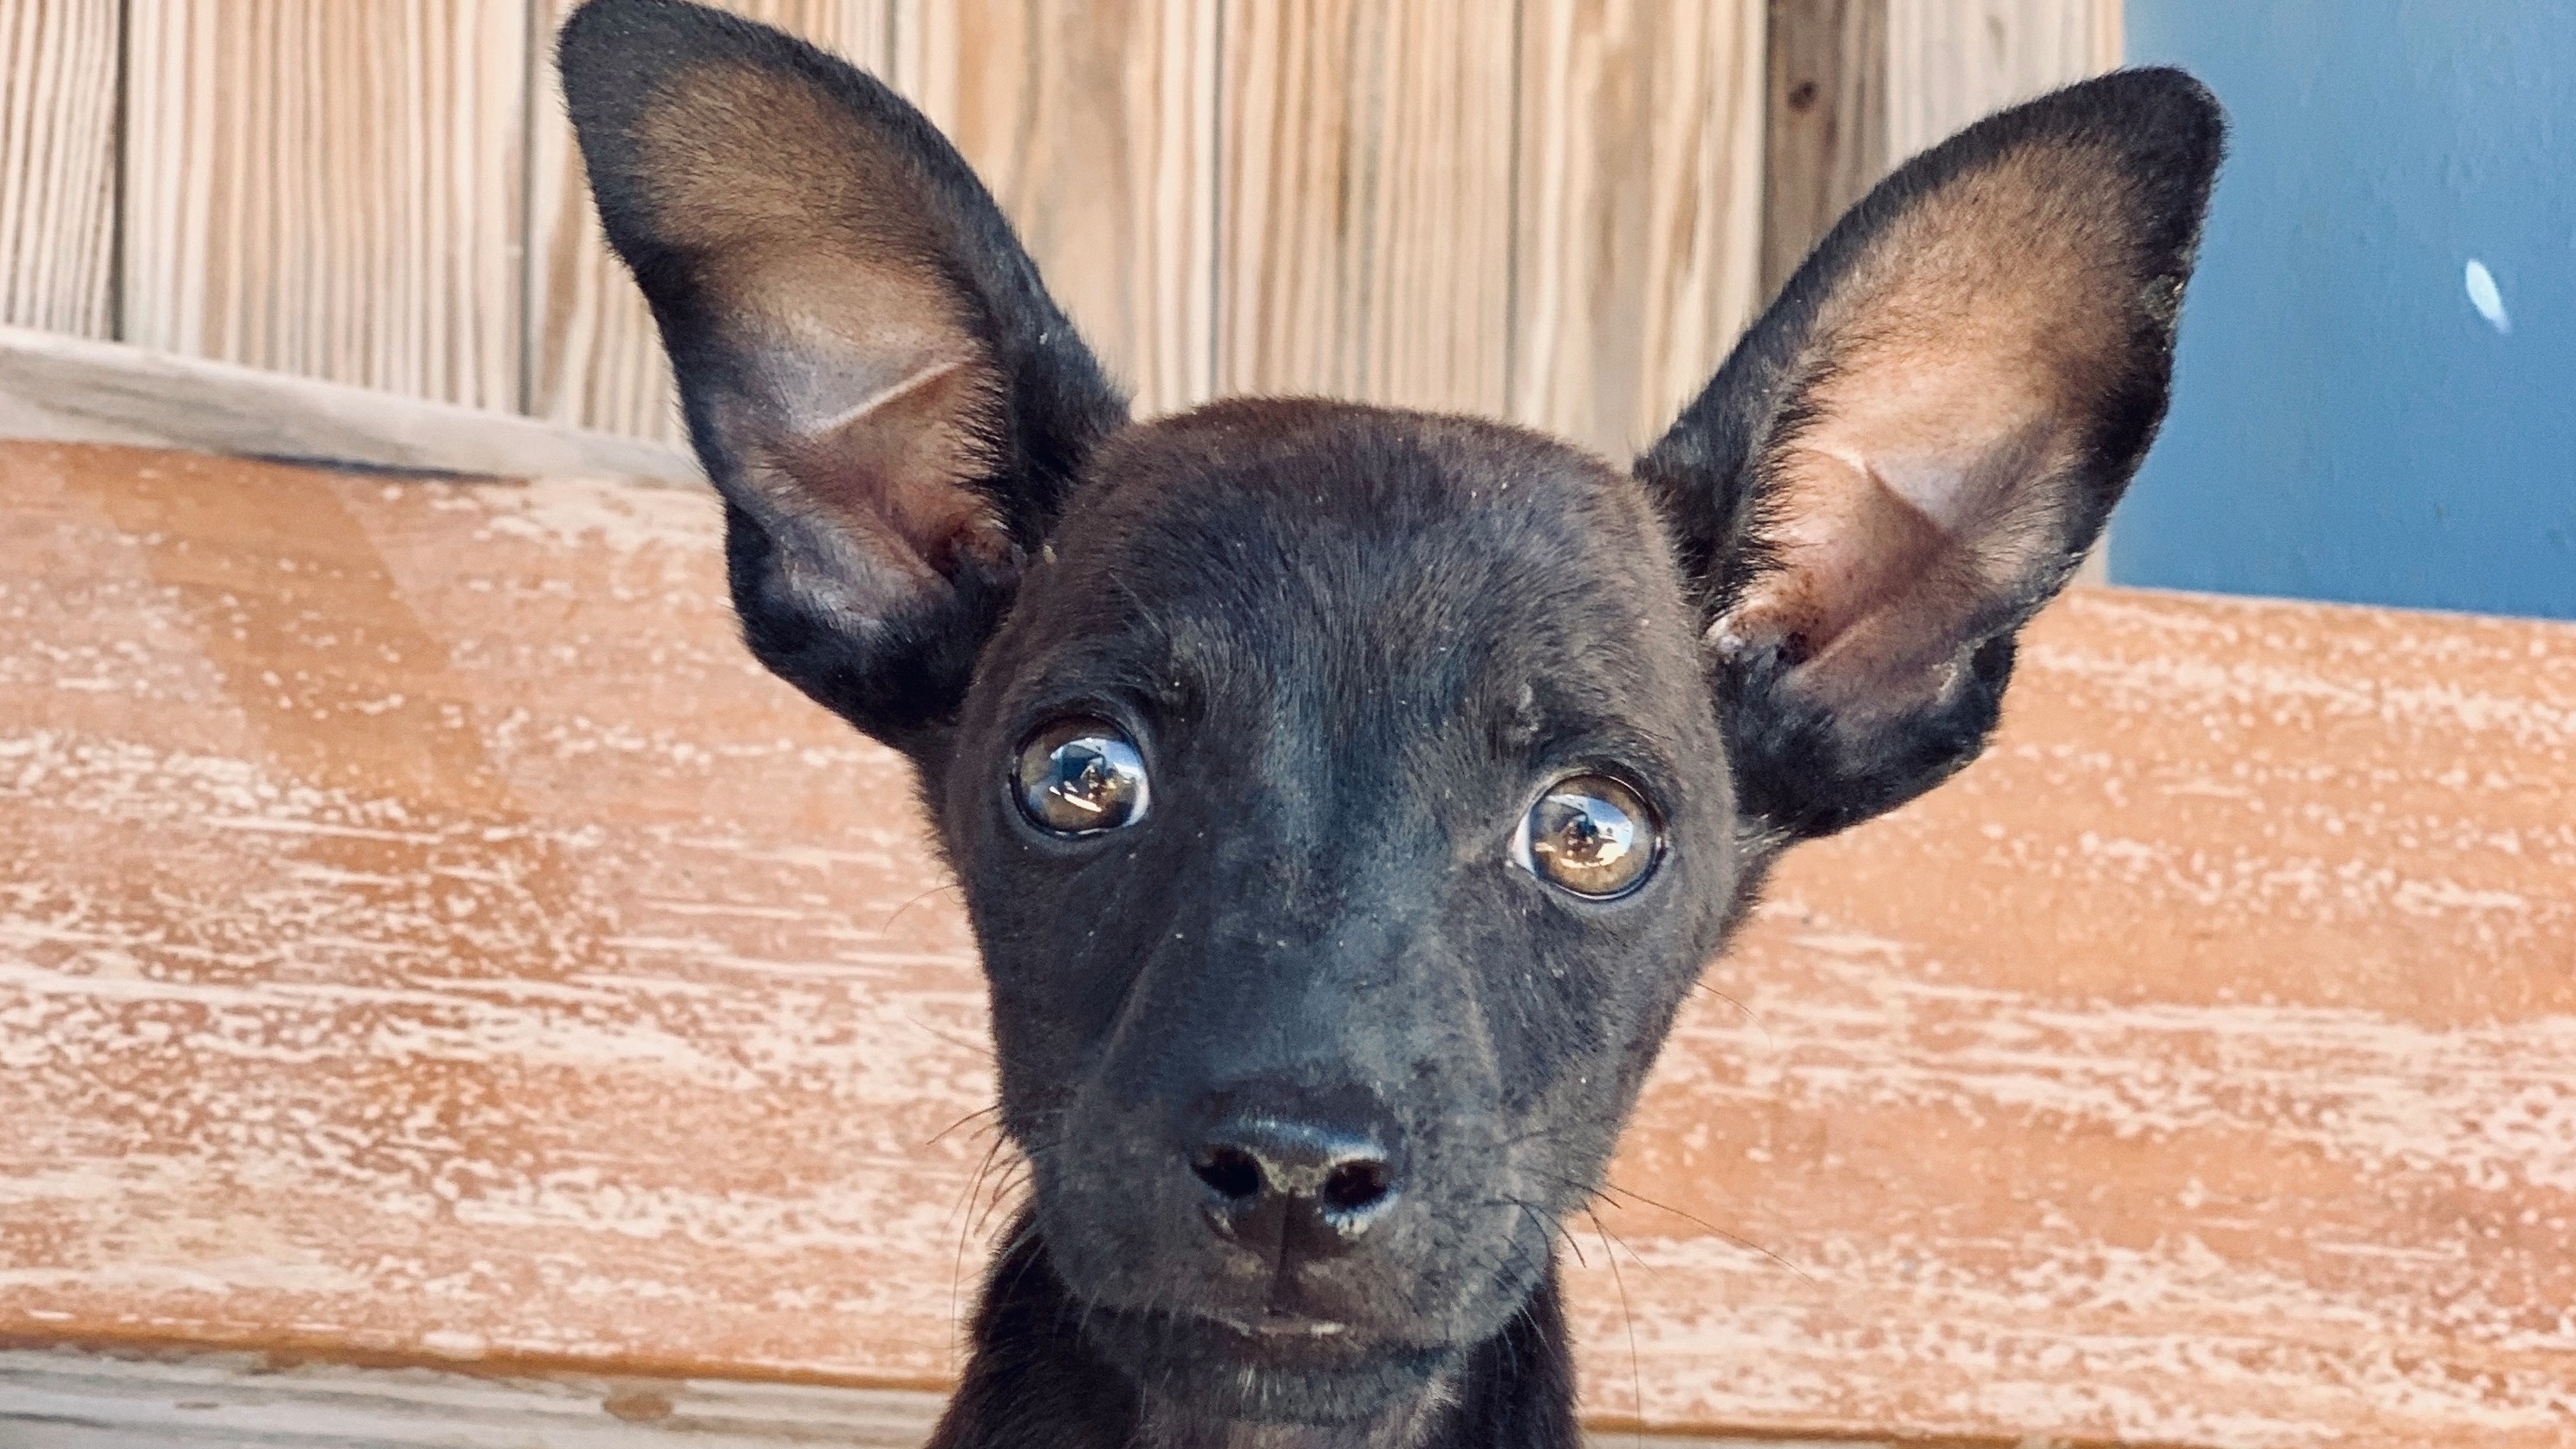 A black pointed-ear puppy